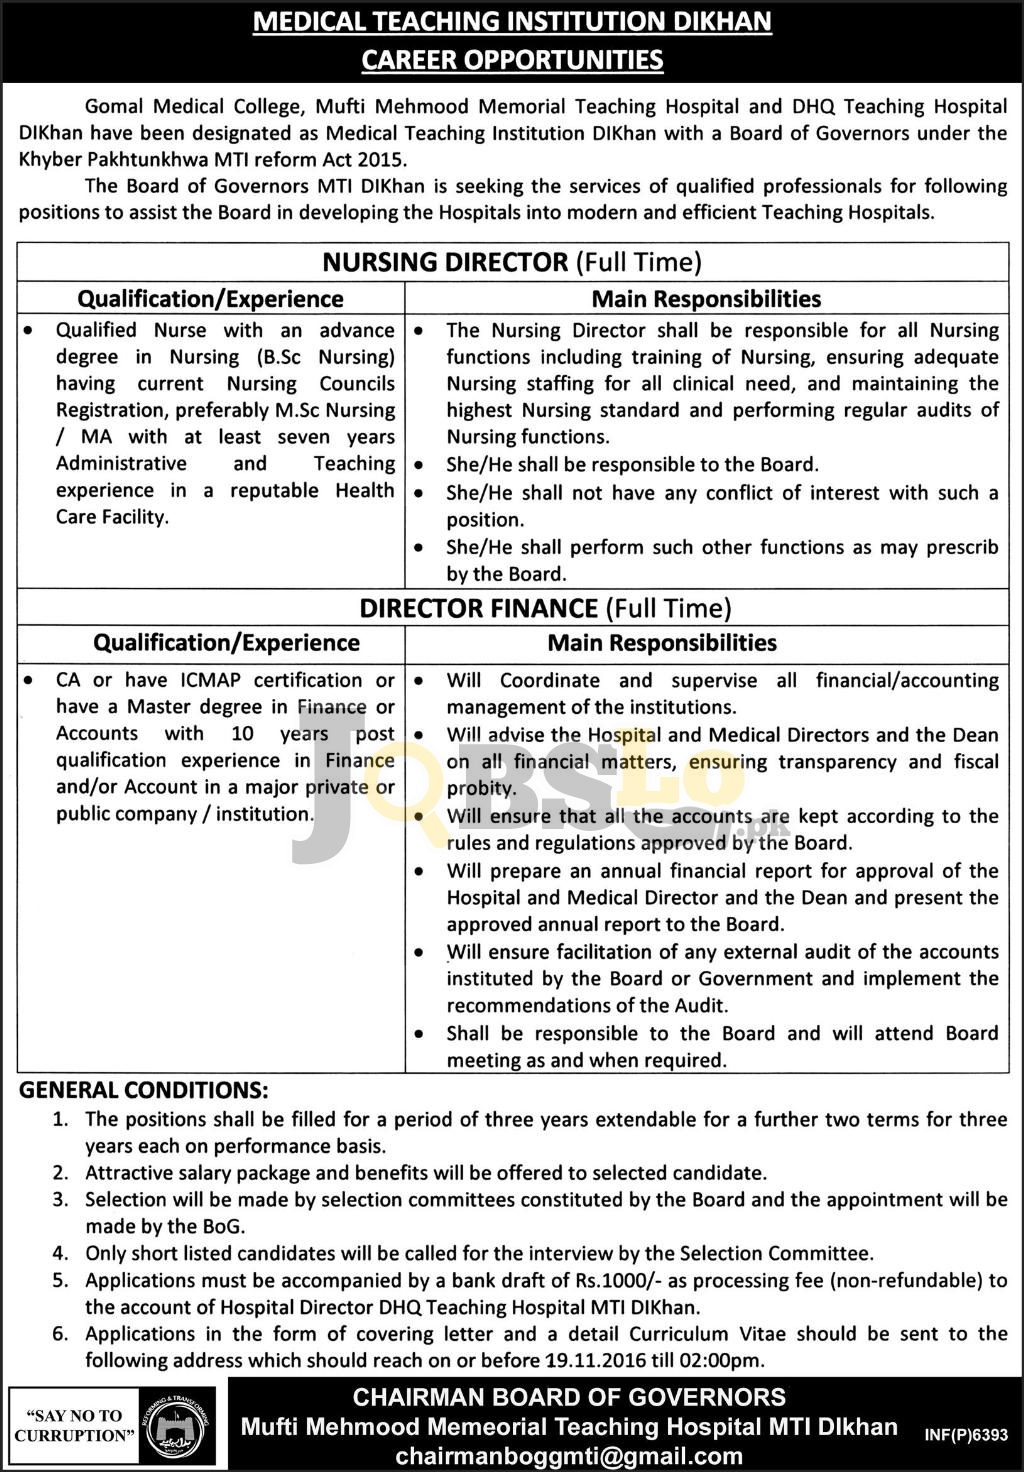 Gomal Medical College DI Khan Jobs